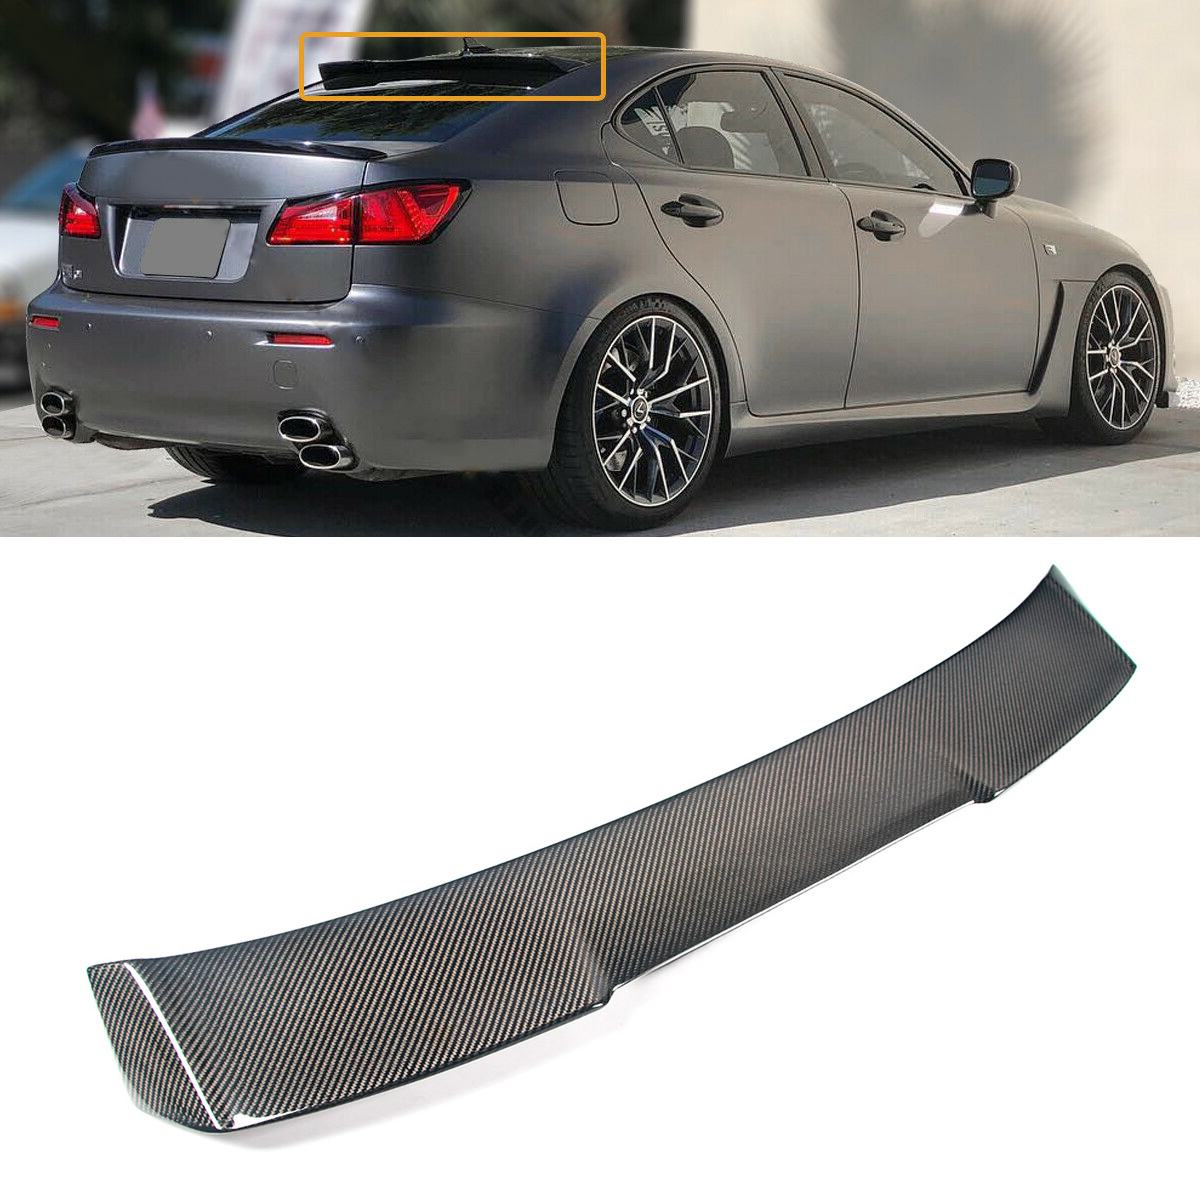 Full Carbon Fiber Rear Roof Lip Spoiler Tail Trunk Boot Wing For <font><b>LEXUS</b></font> IS250 IS350 ISF 2006 2007 2008 <font><b>2009</b></font> 2010 2011 2012 2013 image